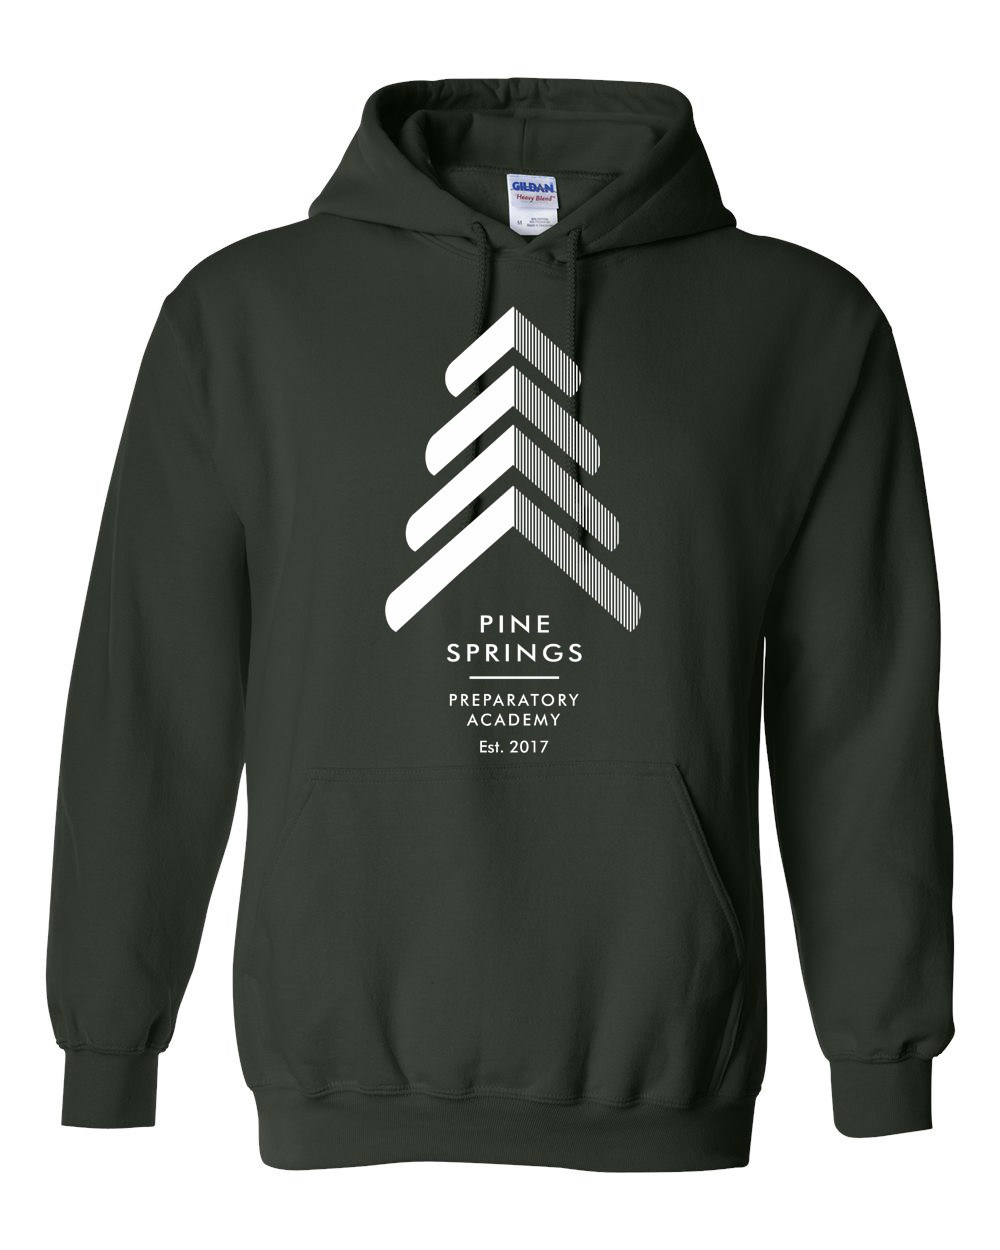 Pine Springs 50/50 Poly/Cotton Mix Pullover Hoodies